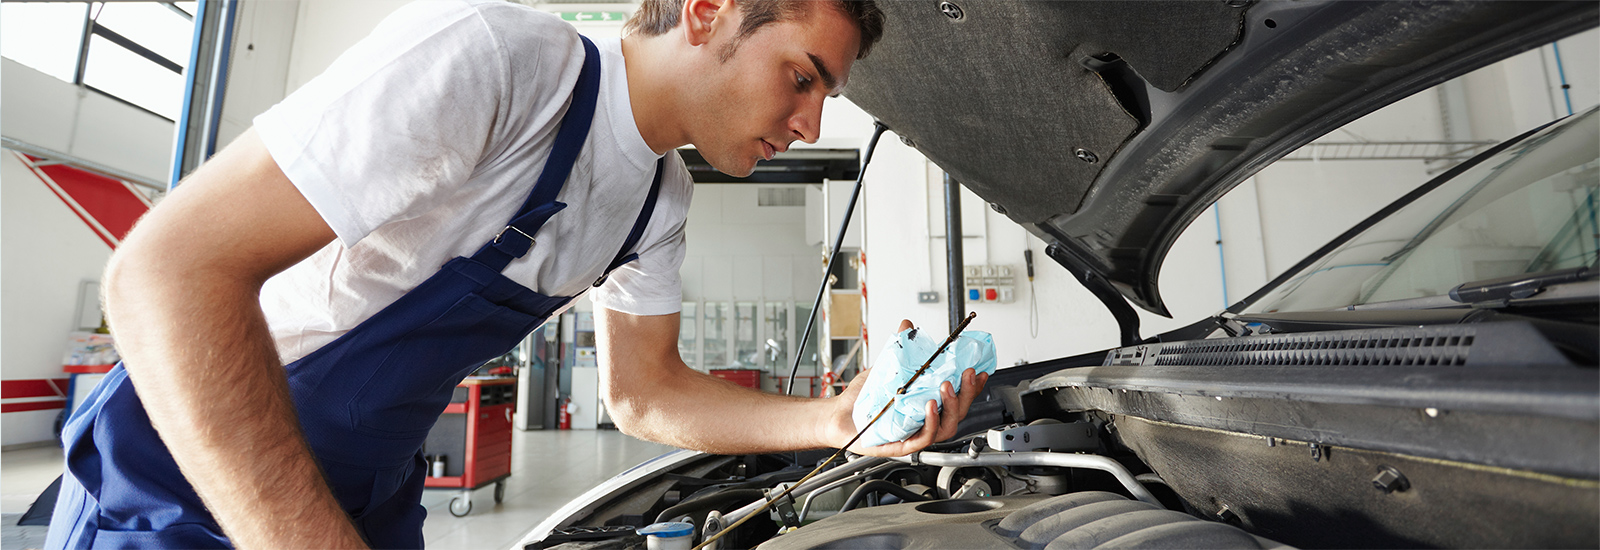 a repairman looks over the engine of a car in the shop